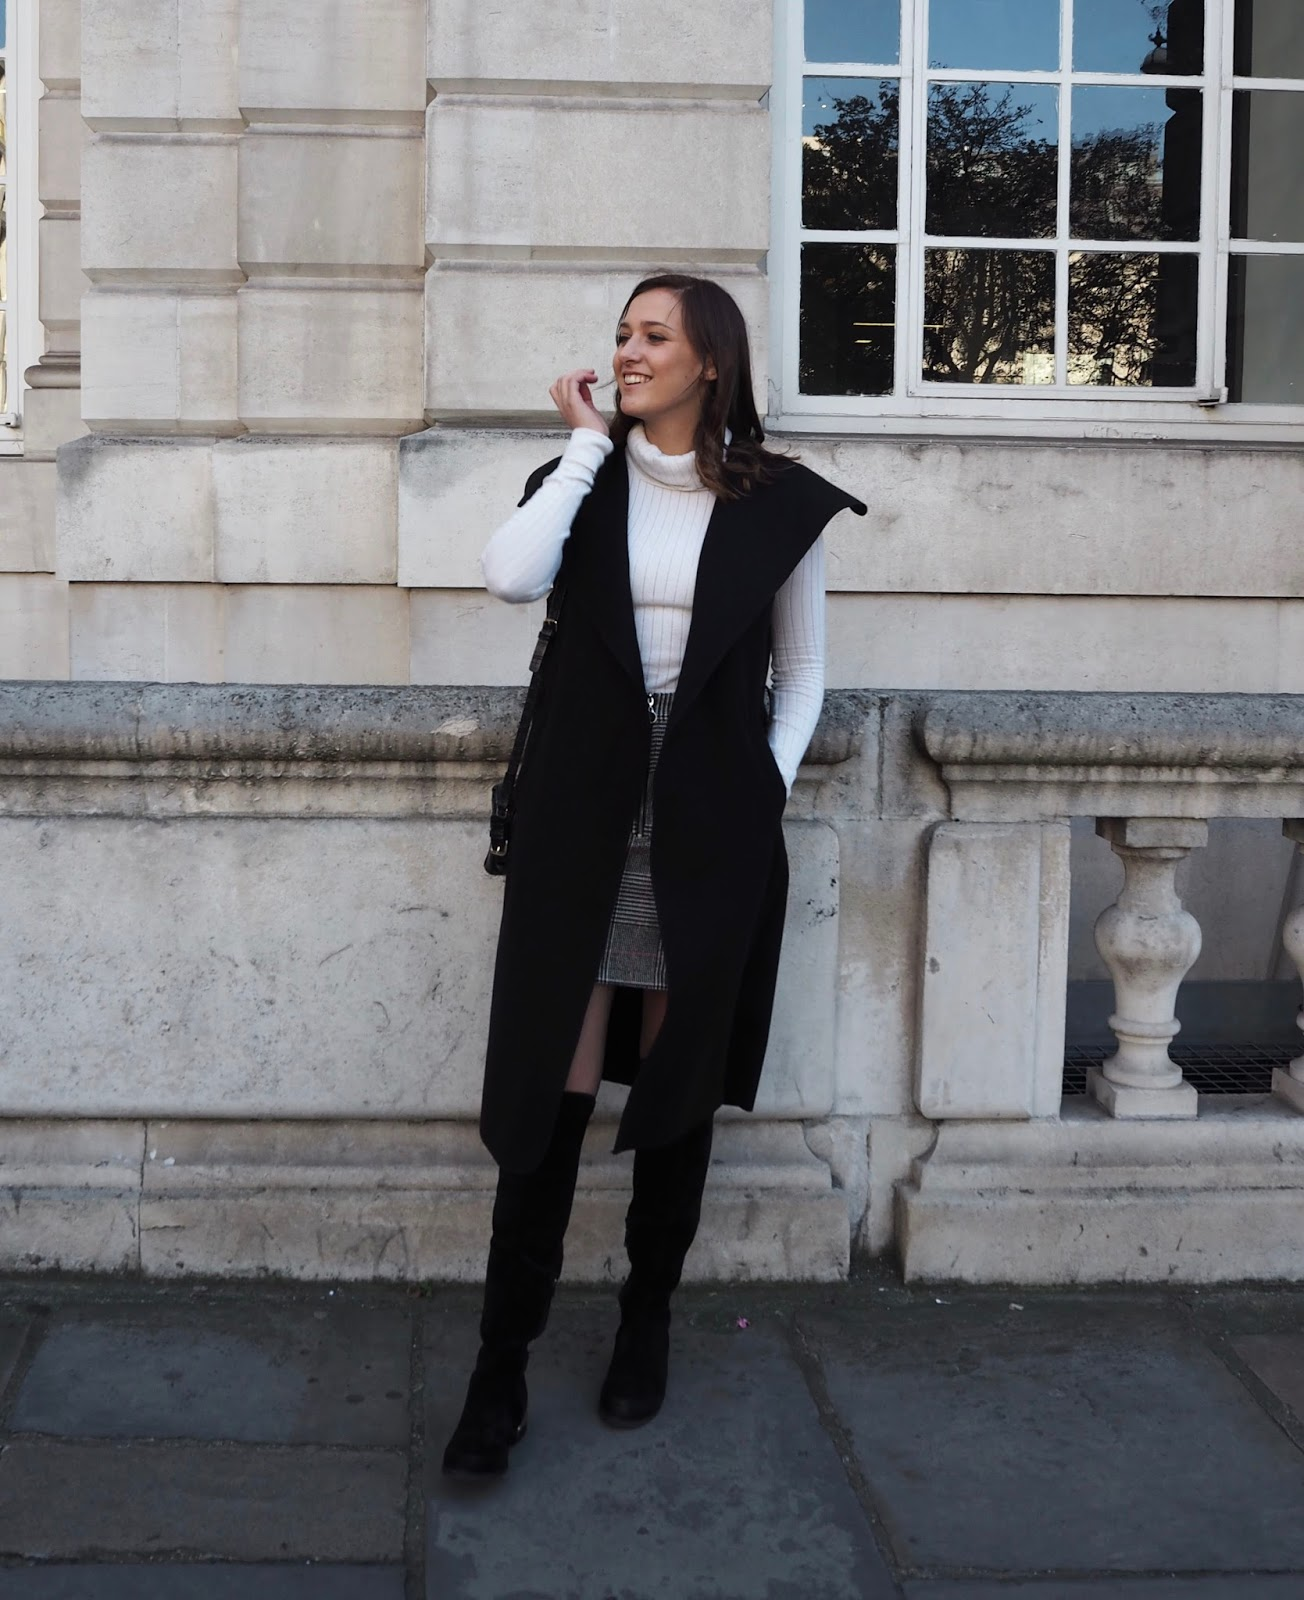 Lauren Rose Style // The Waterfall Coat MISS PAP // Street Style London Blogger Outfit Winter